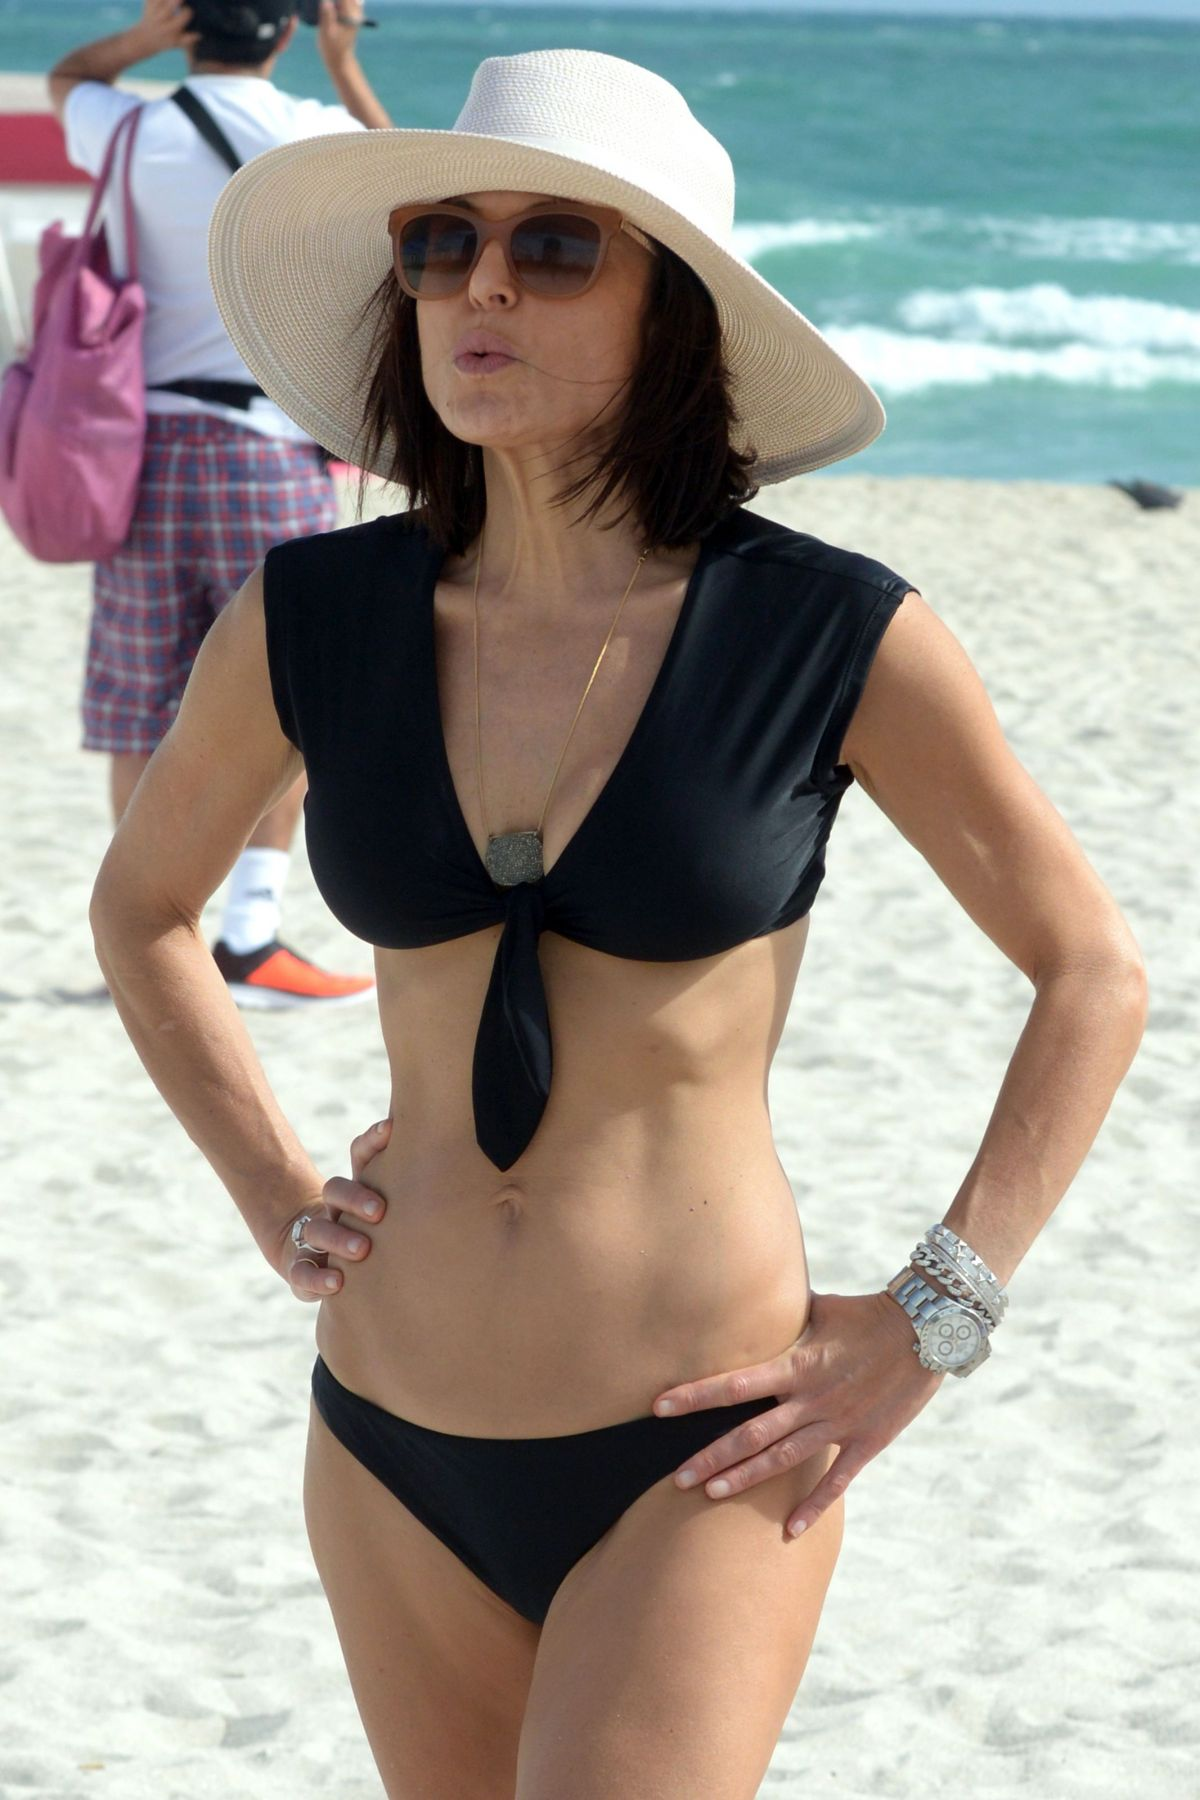 BETHENNY FRANKEL in Bikini on the Beach in Miami 12/05/2016   bethenny-frankel-in-bikini-on-the-beach-in-miami-12-05-2016_24